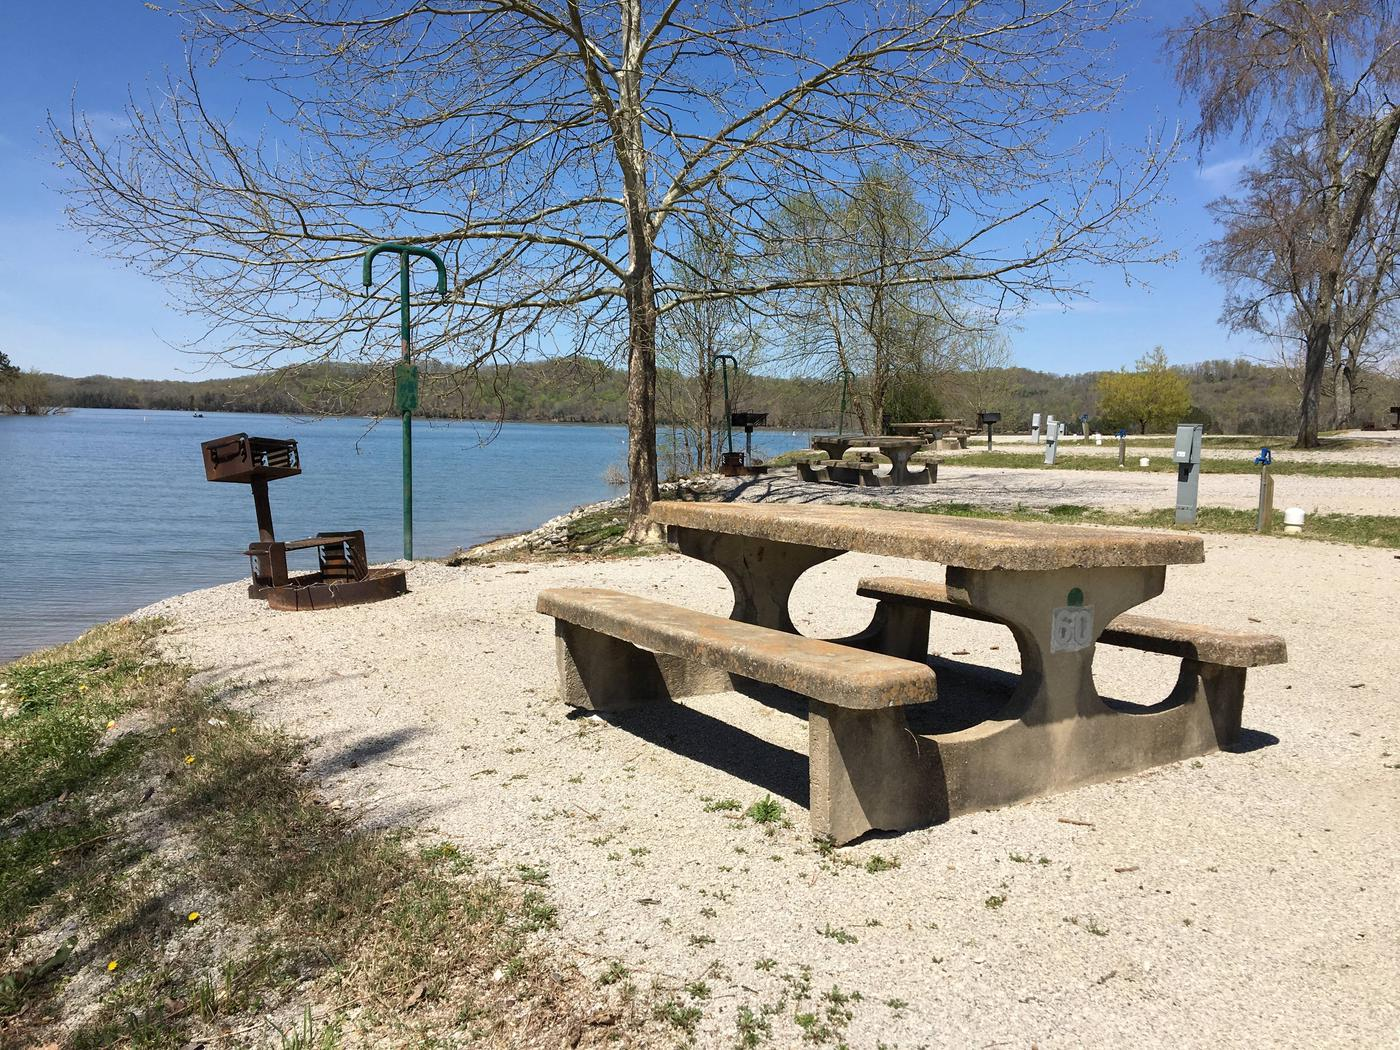 LILLYDALE CAMPGROUND SITE # 60 CONCRETE TABLE WITH GRILLSLILLYDALE CAMPGROUND SITE # 60